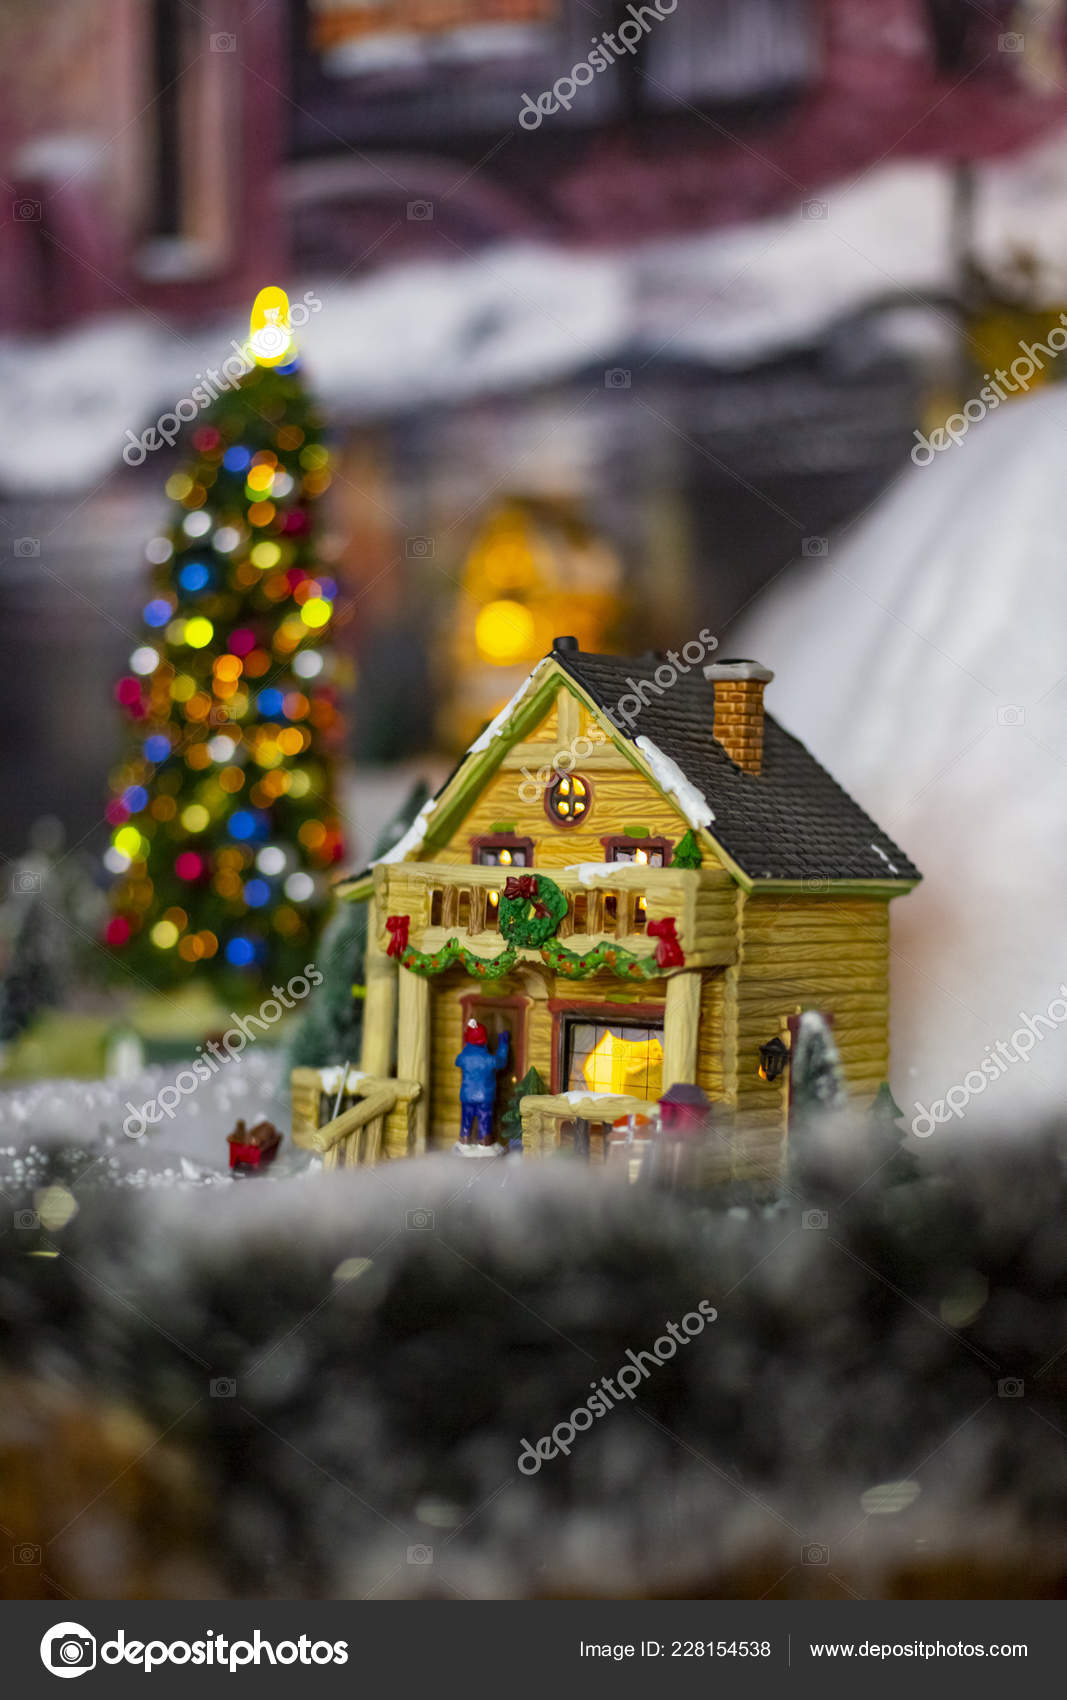 Fabulous holiday houses figurines xmas \u2014 Stock Photo